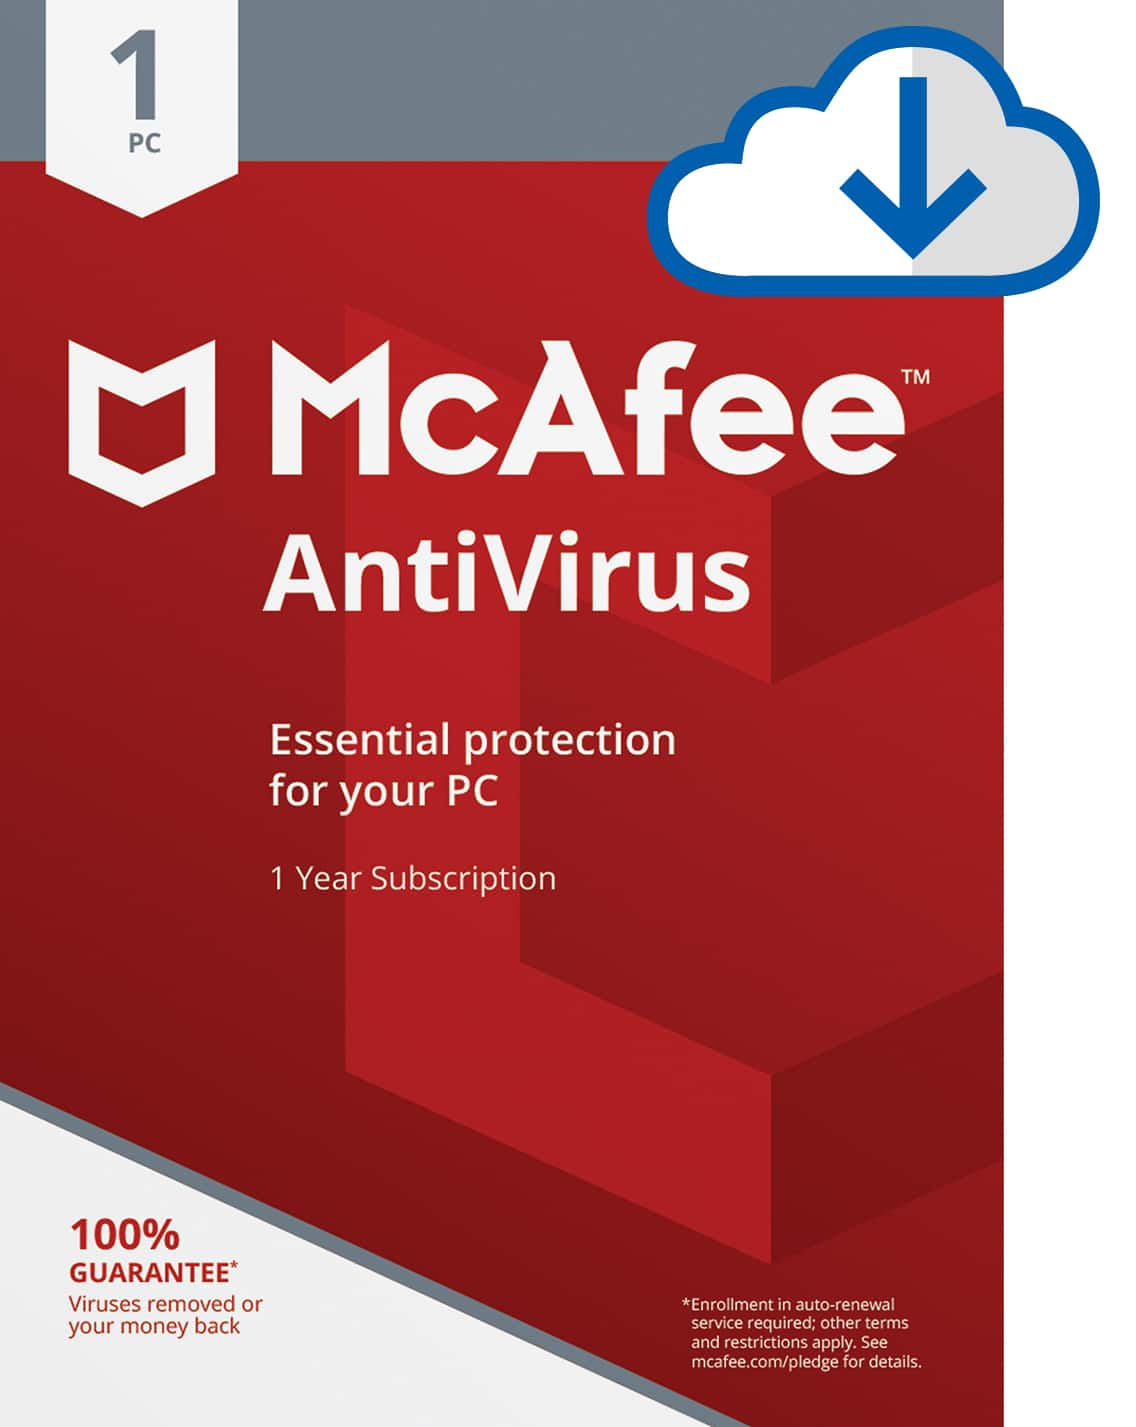 Antivirus Software Deals & Coupons. Don't let your machine get bogged down with malicious malware. Download Internet security software using antivirus coupons.